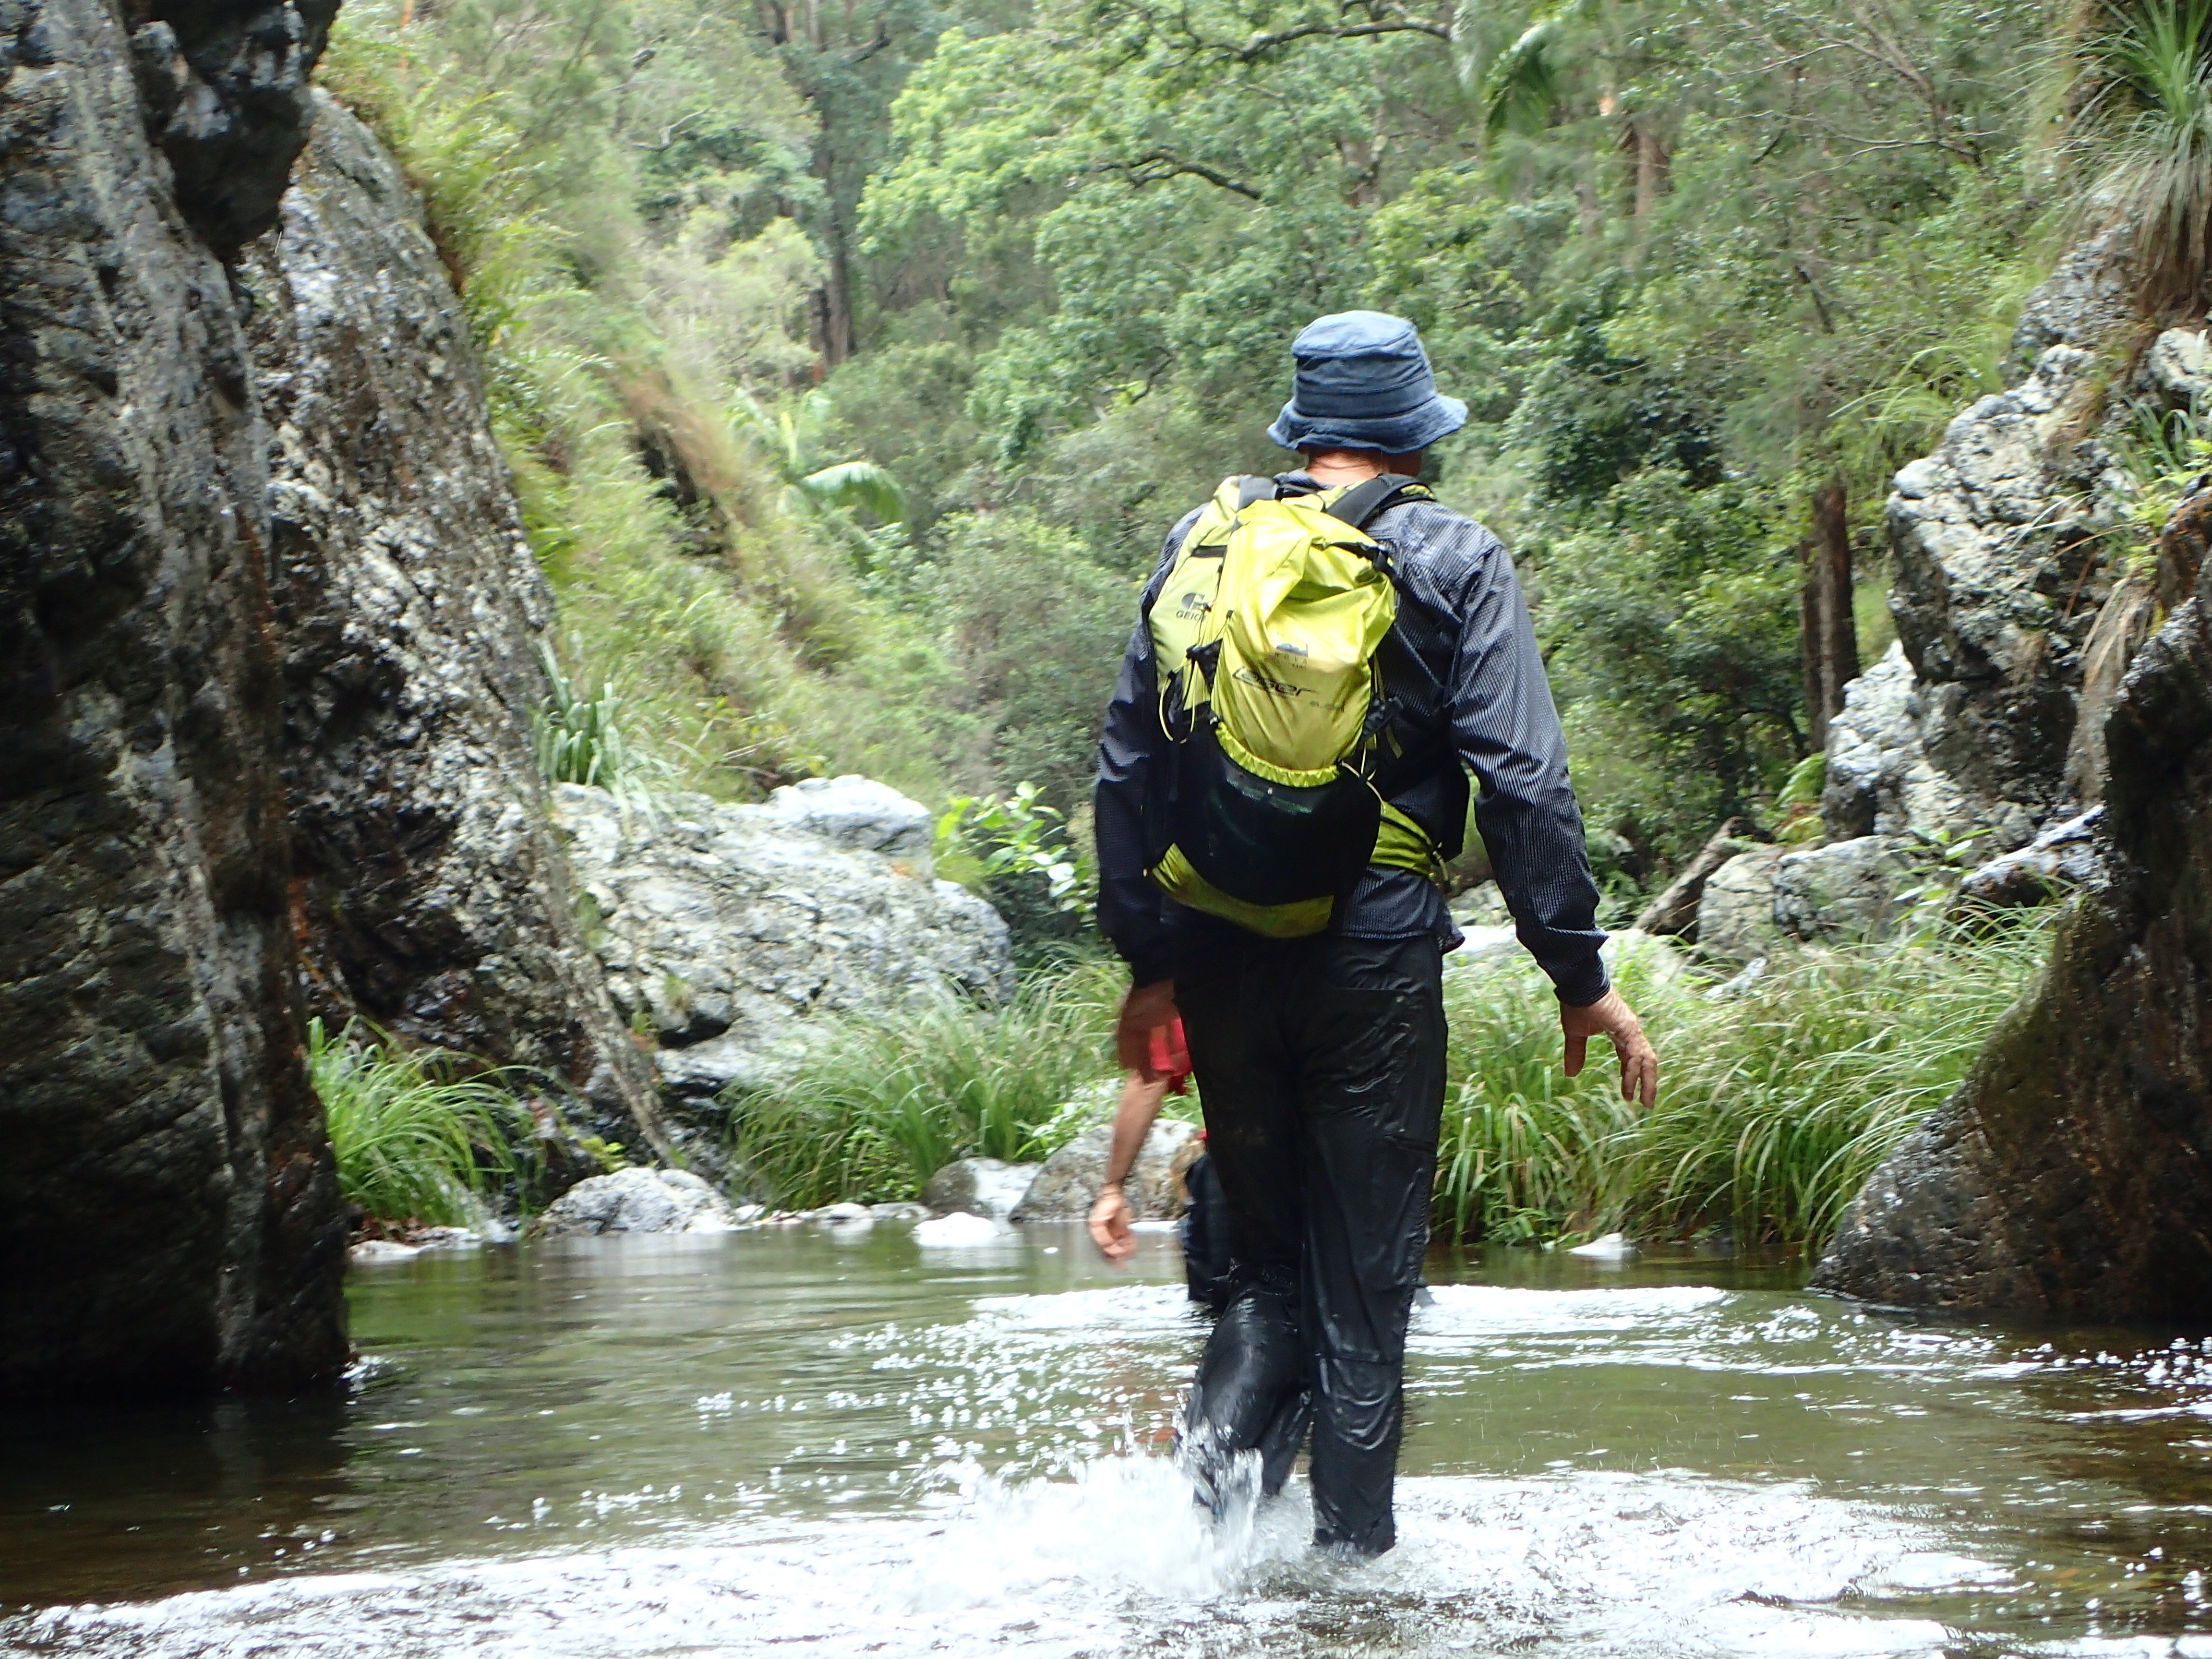 Kevin walking through a creek at Eagles Nest Queensland